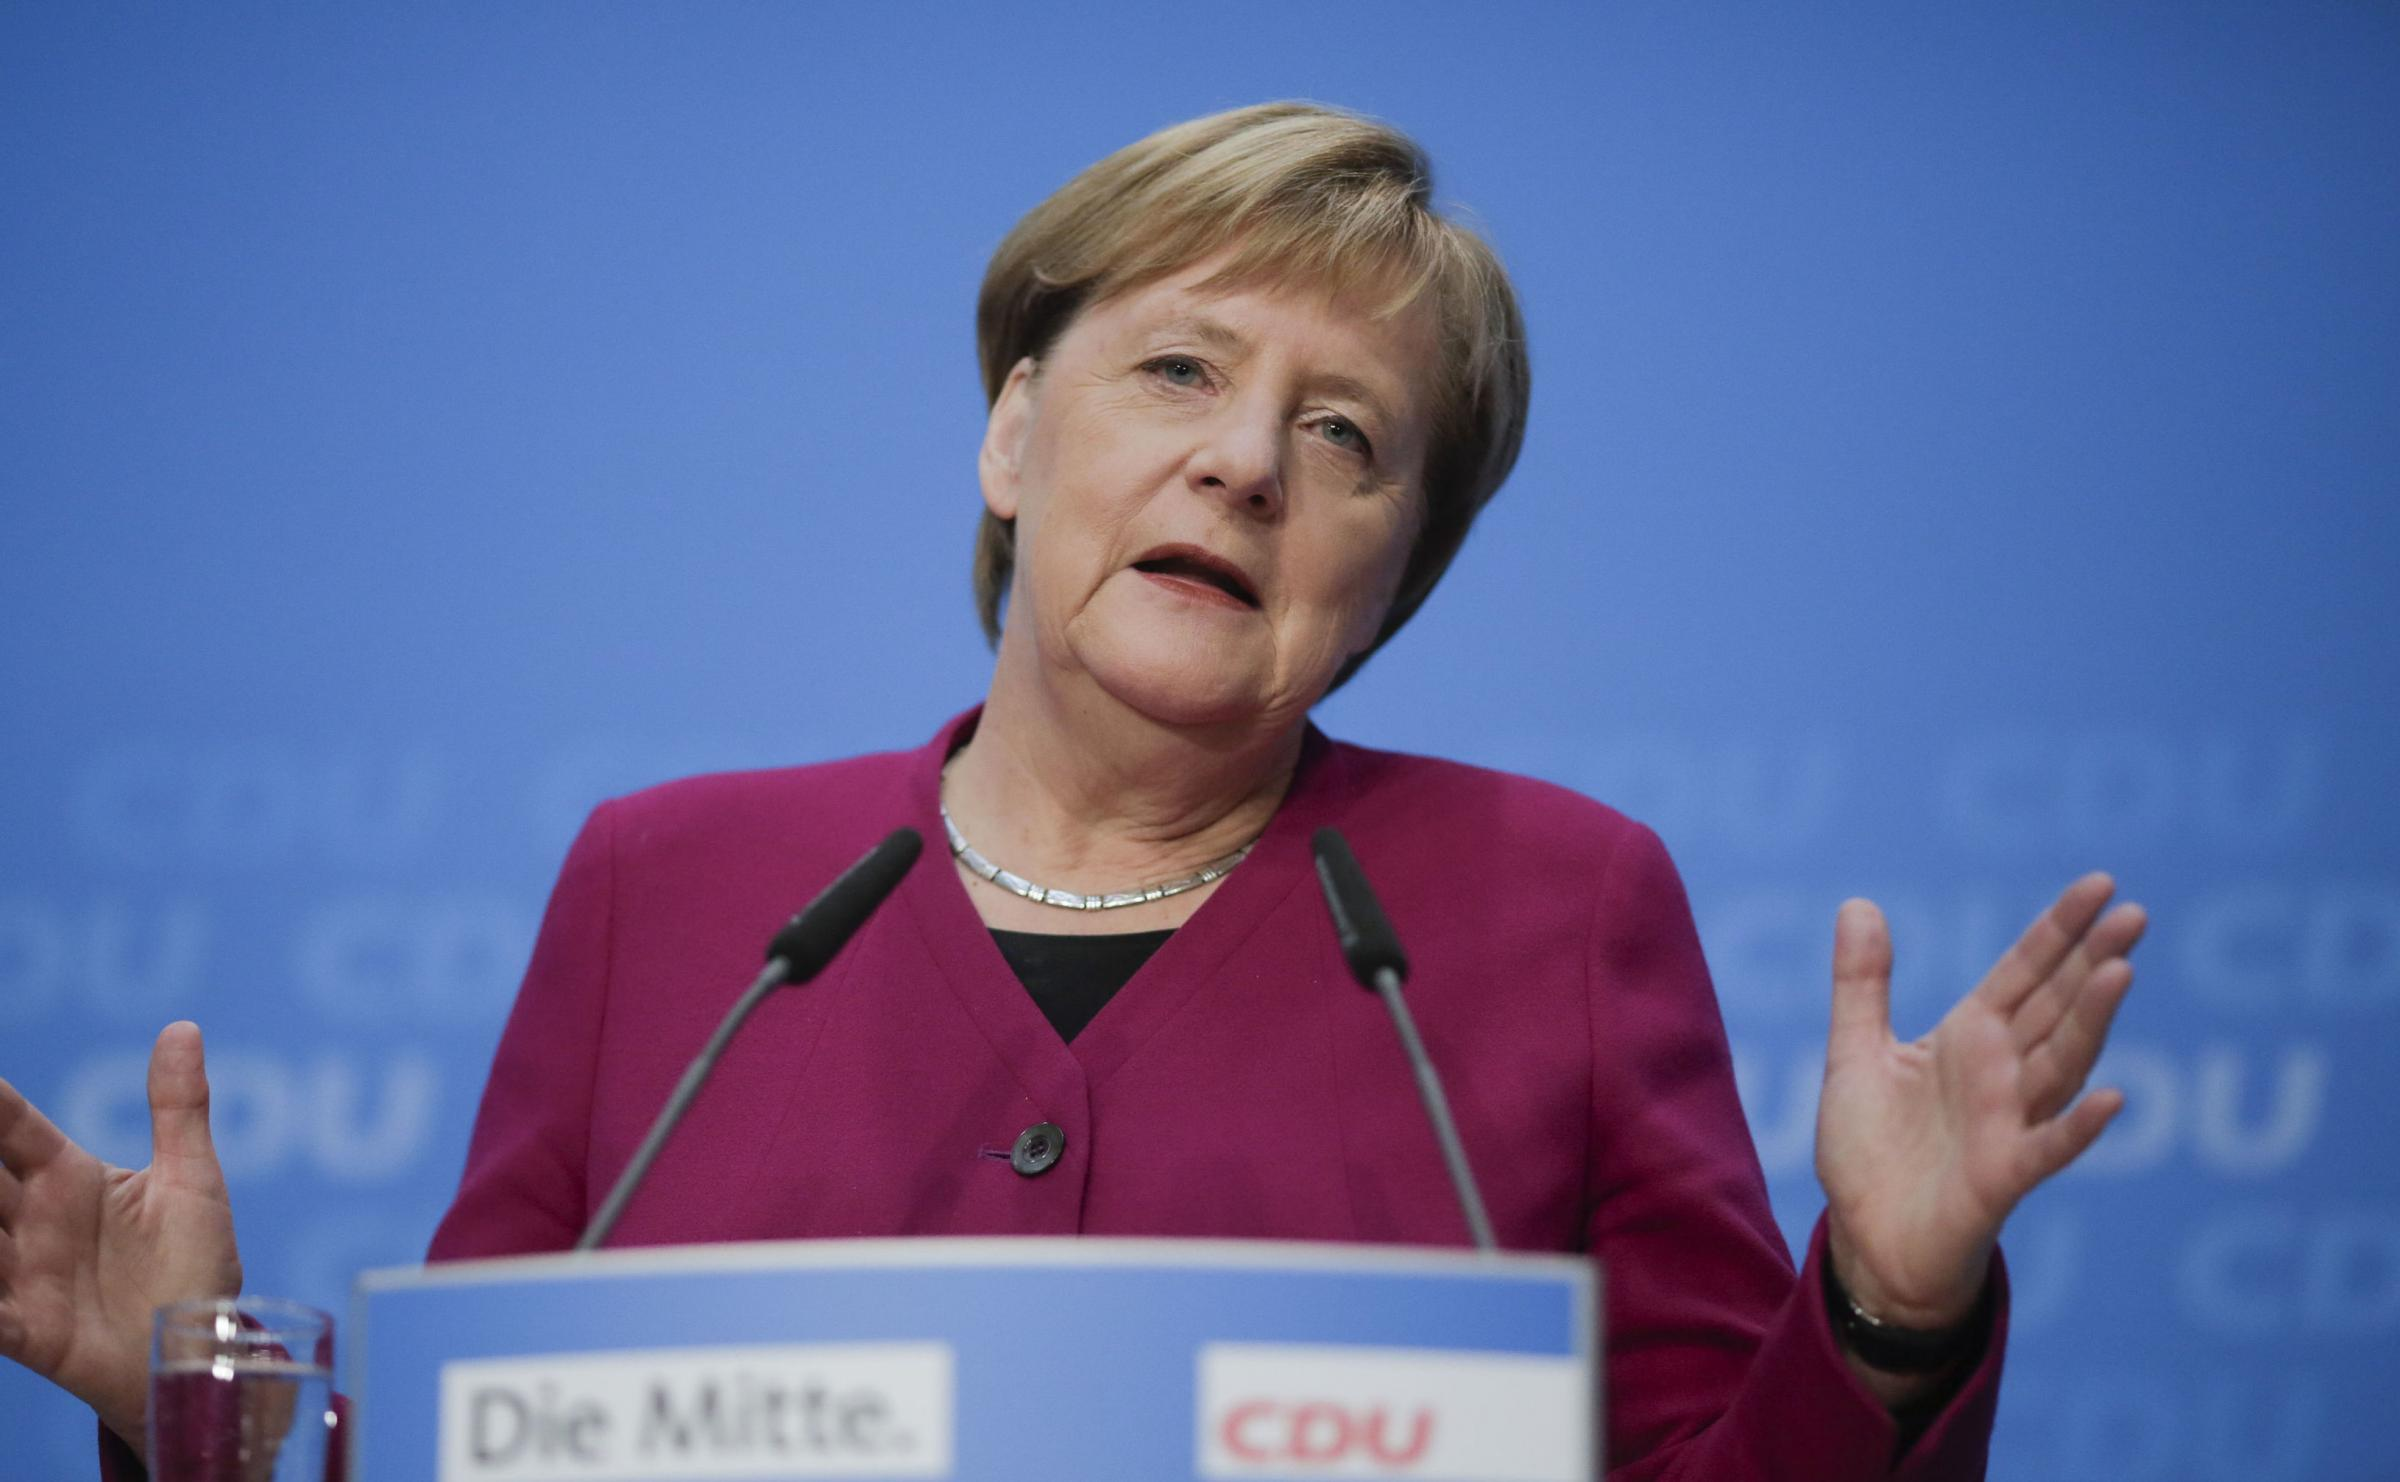 German politicians' data published online in breach